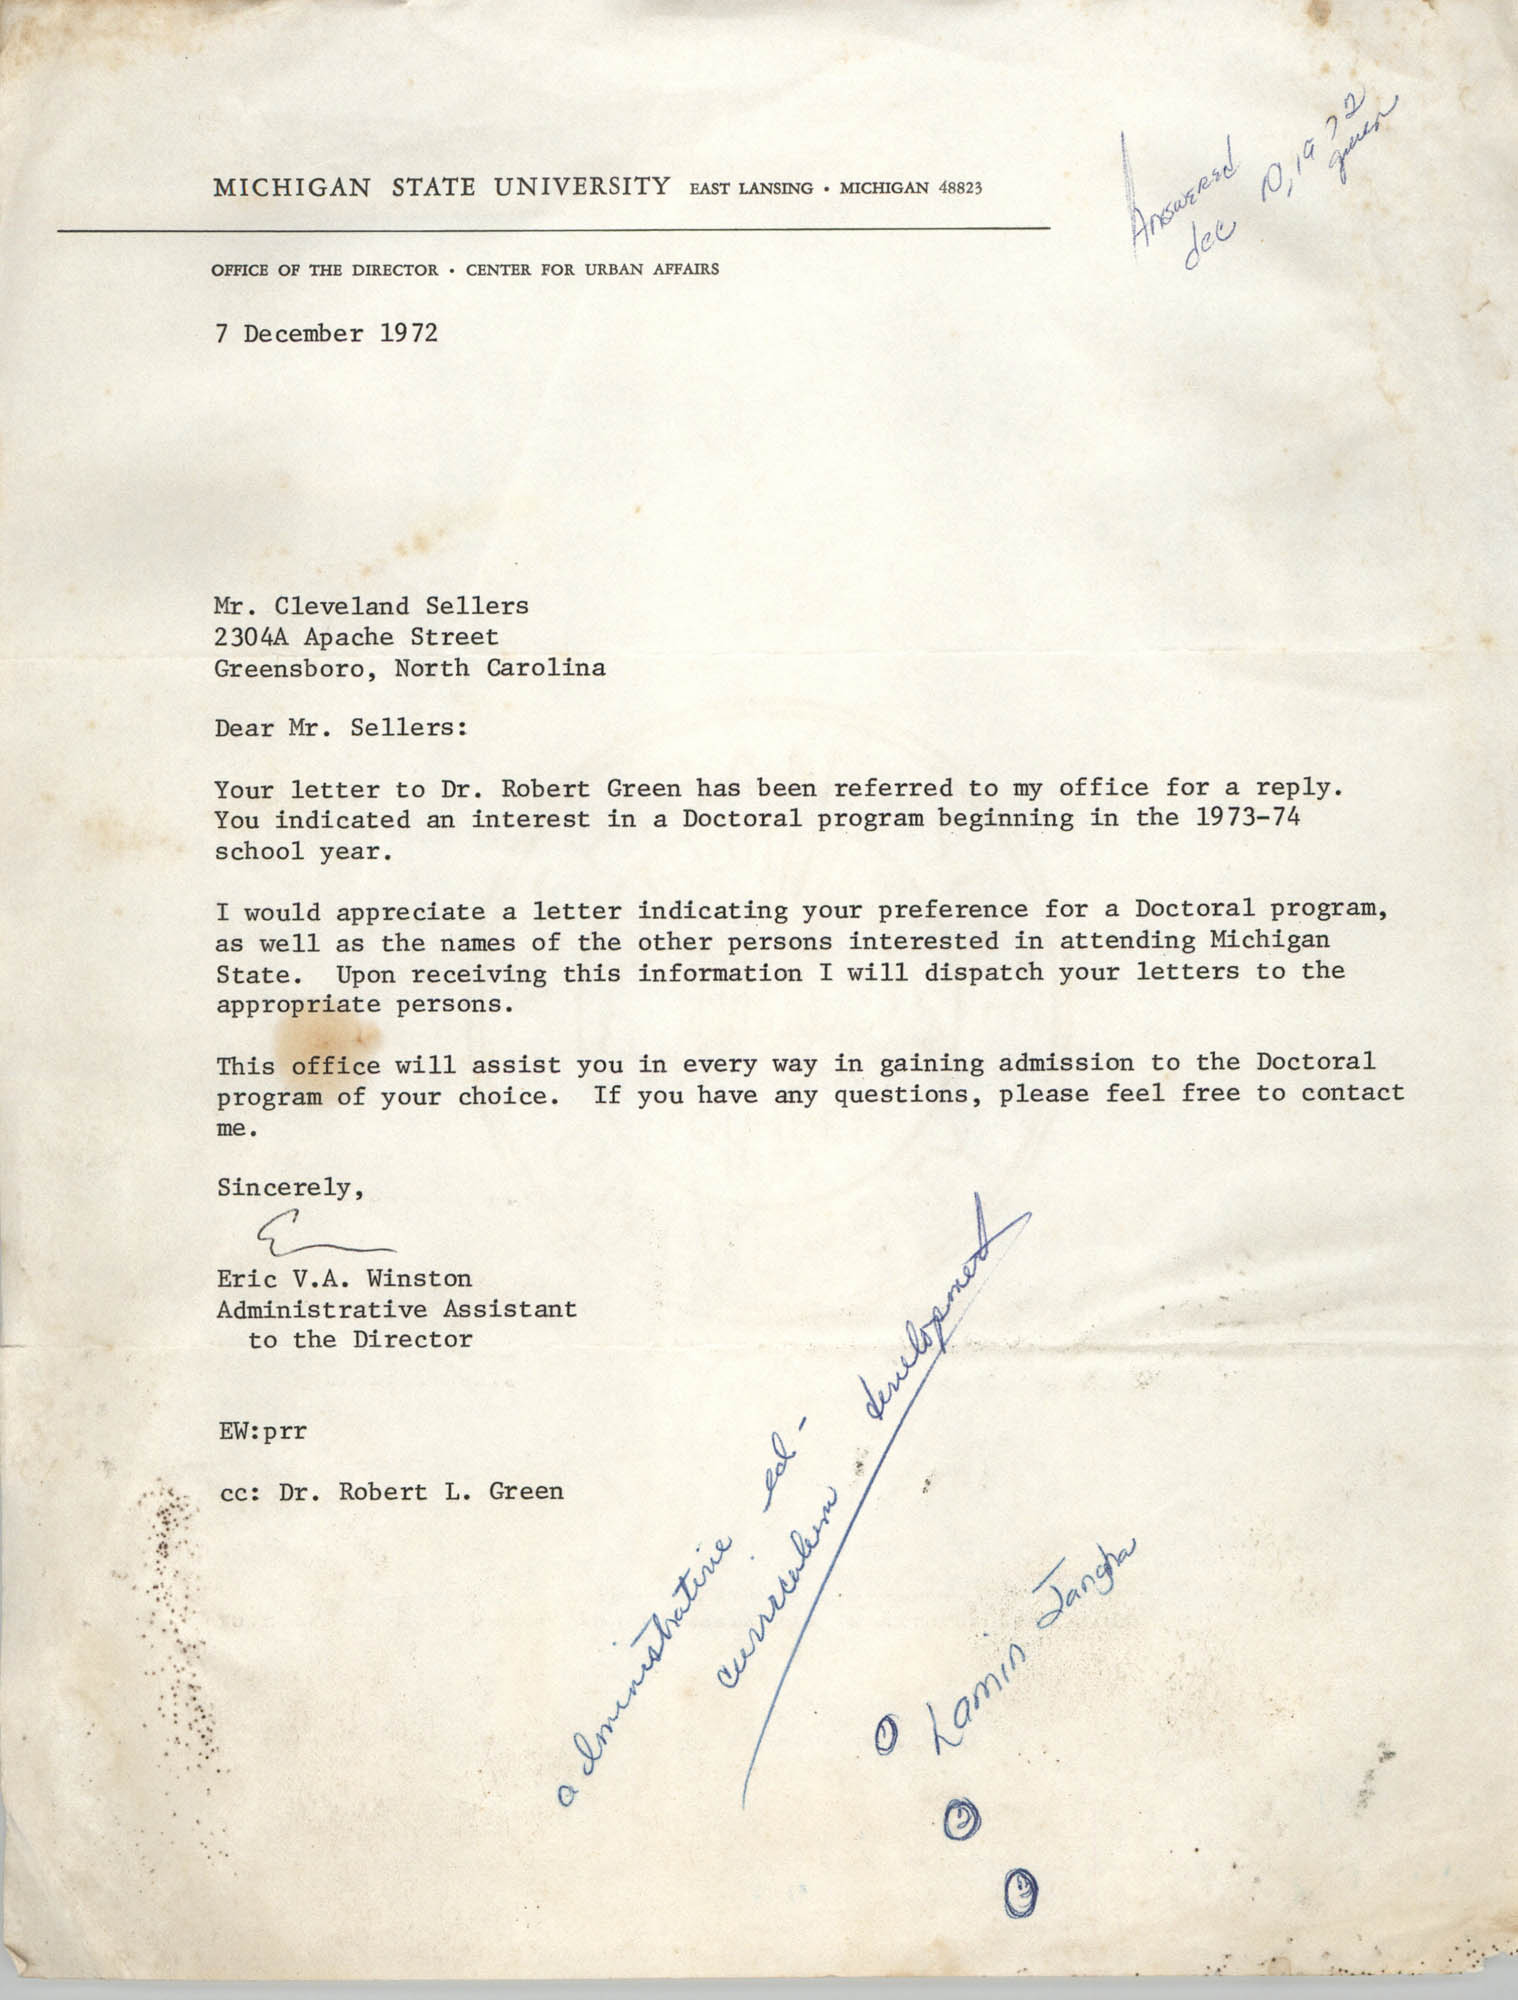 Letter from Eric V. A. Winston to Cleveland Sellers, December 7, 1972